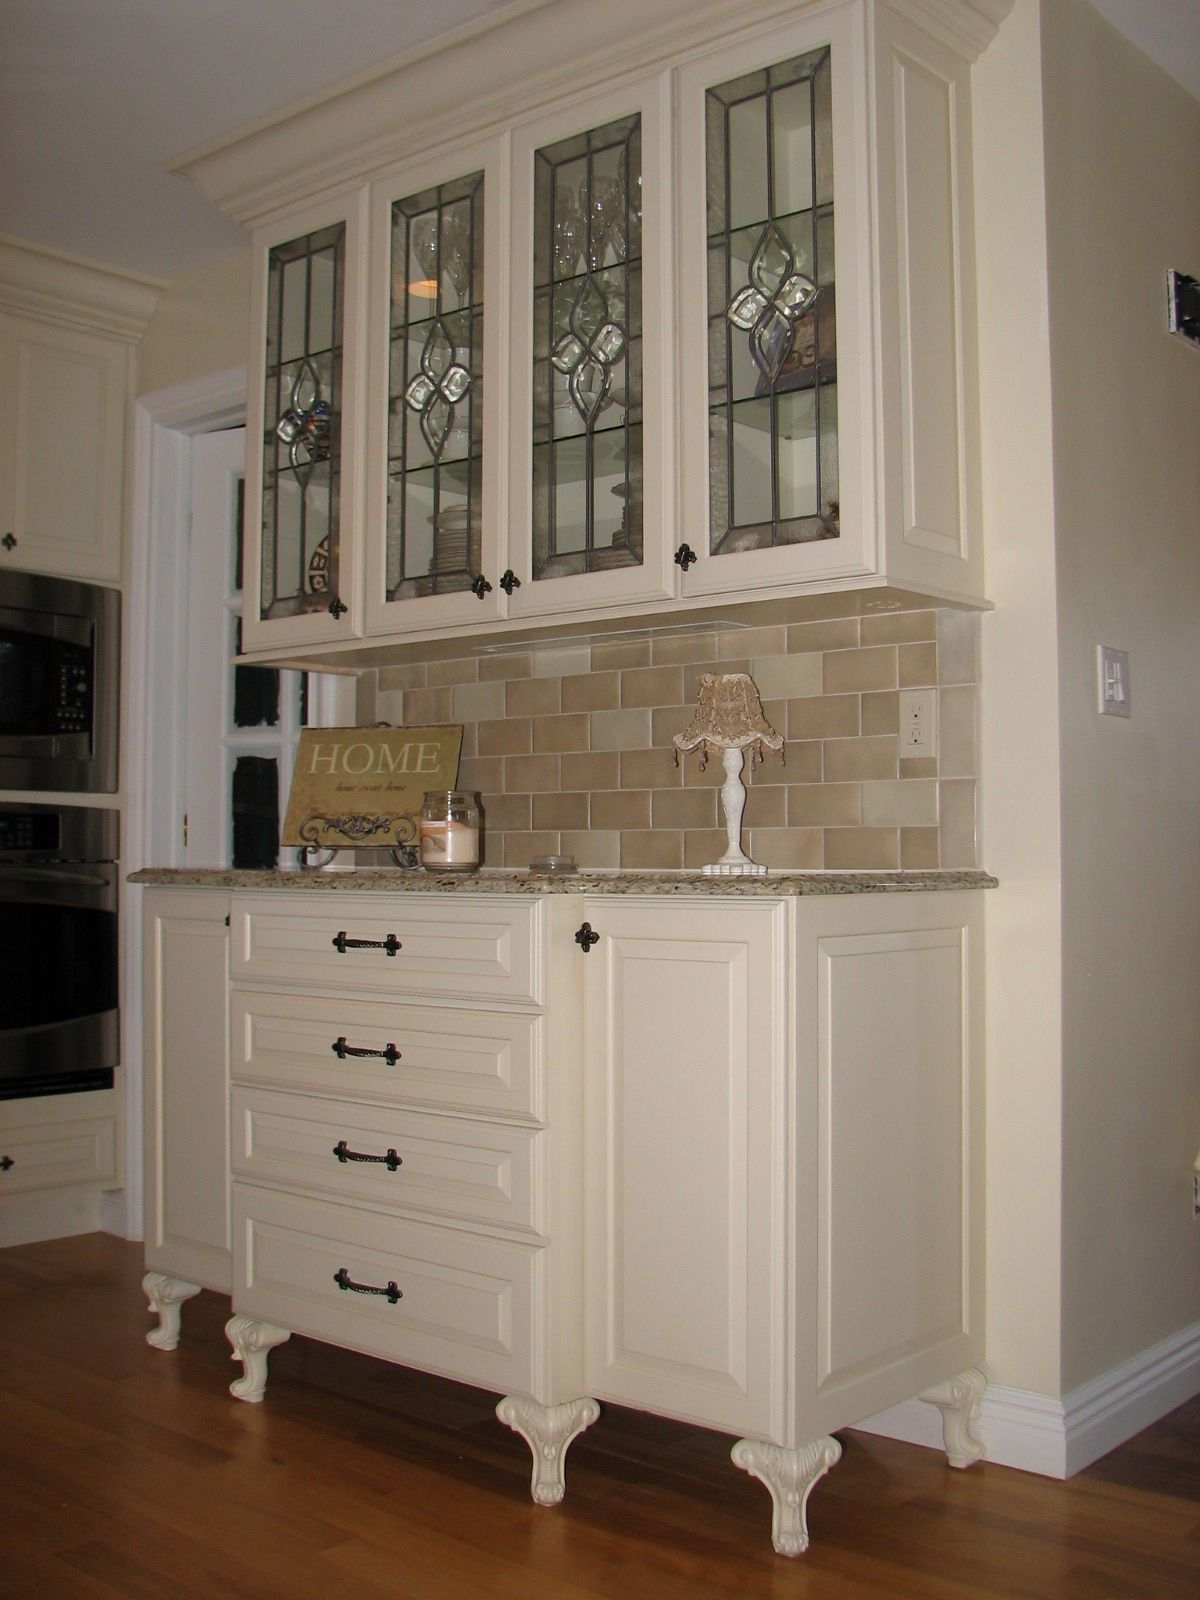 Kitchen cabinet feet wood home is where the heart is